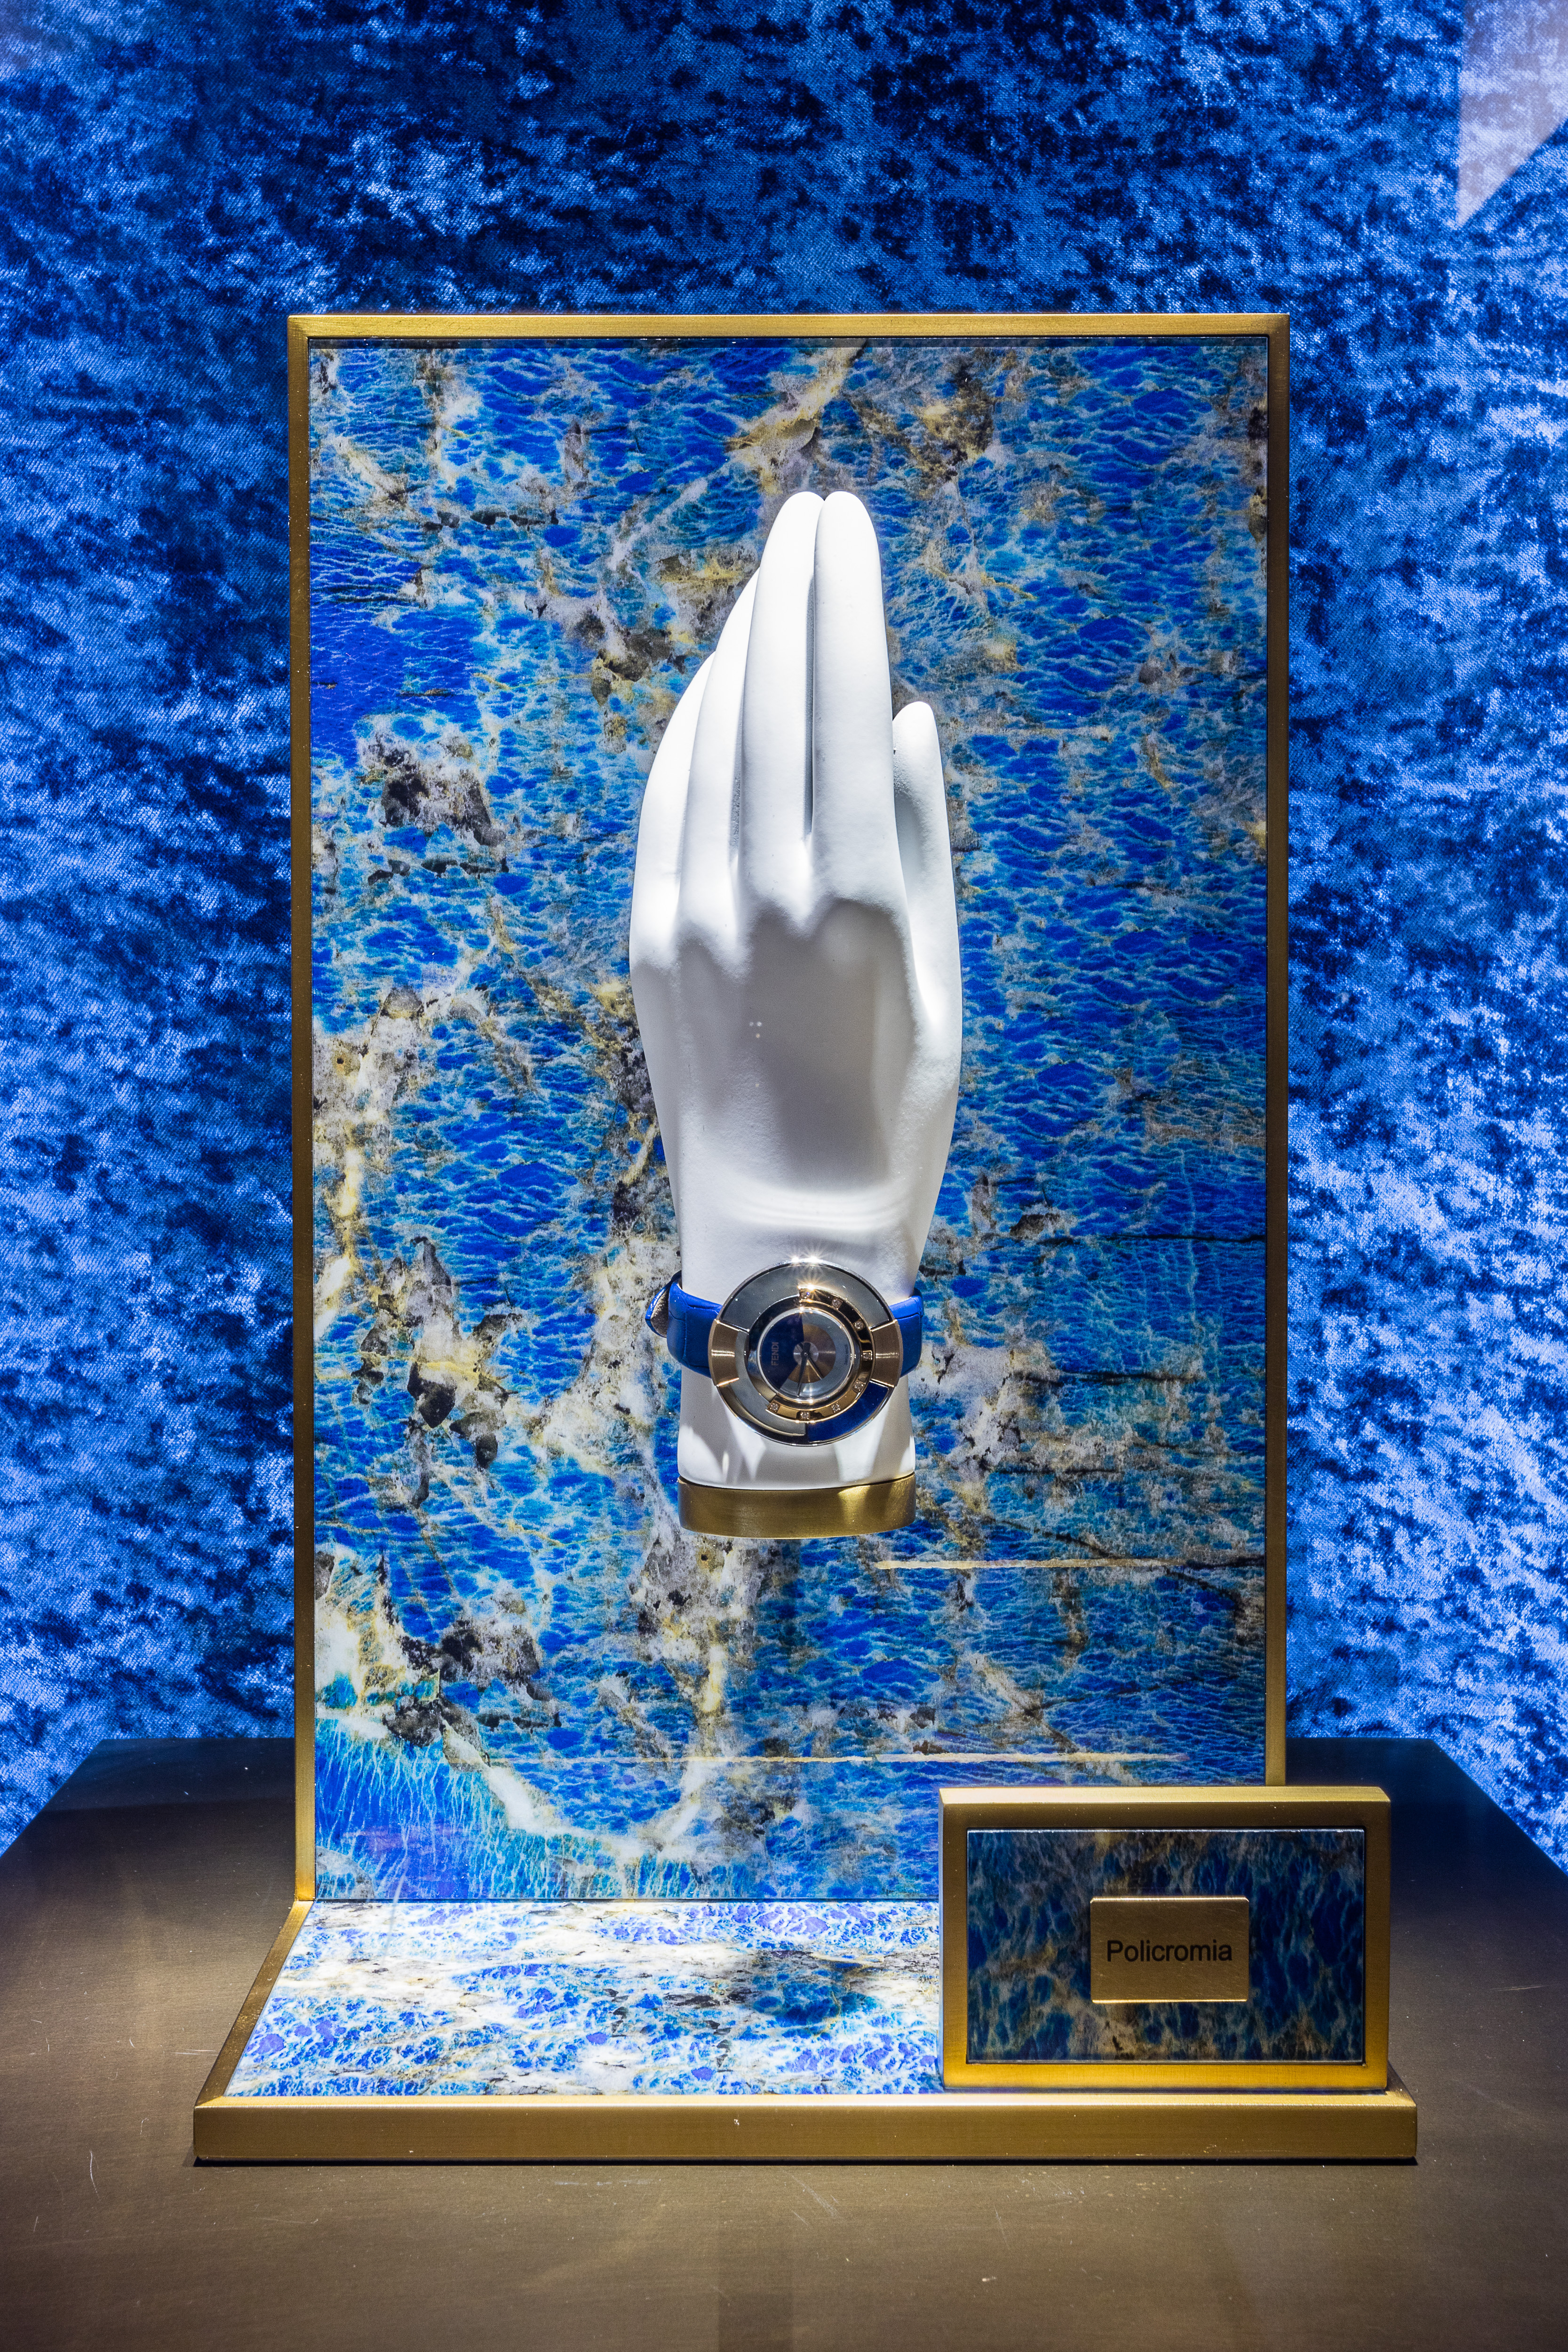 Fendi collection entitled Policromia and the unique display setting created for the jewelry display. Although simple, the strong blue makes all the difference.